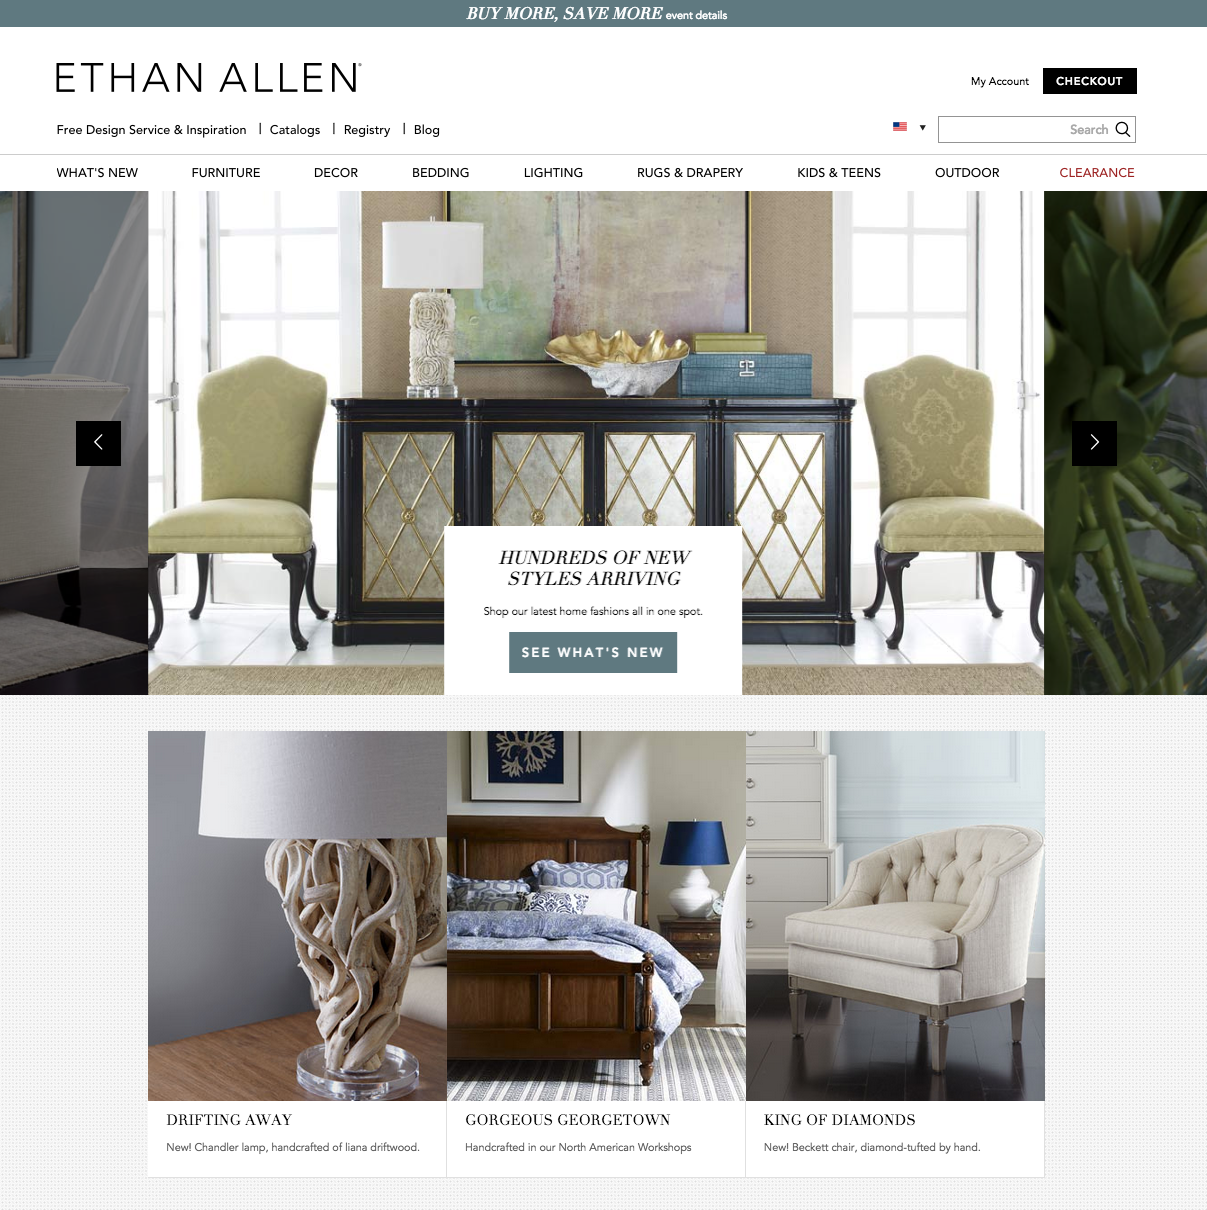 Ethan Allen Furniture ~ Top reviews and complaints about ethan allen